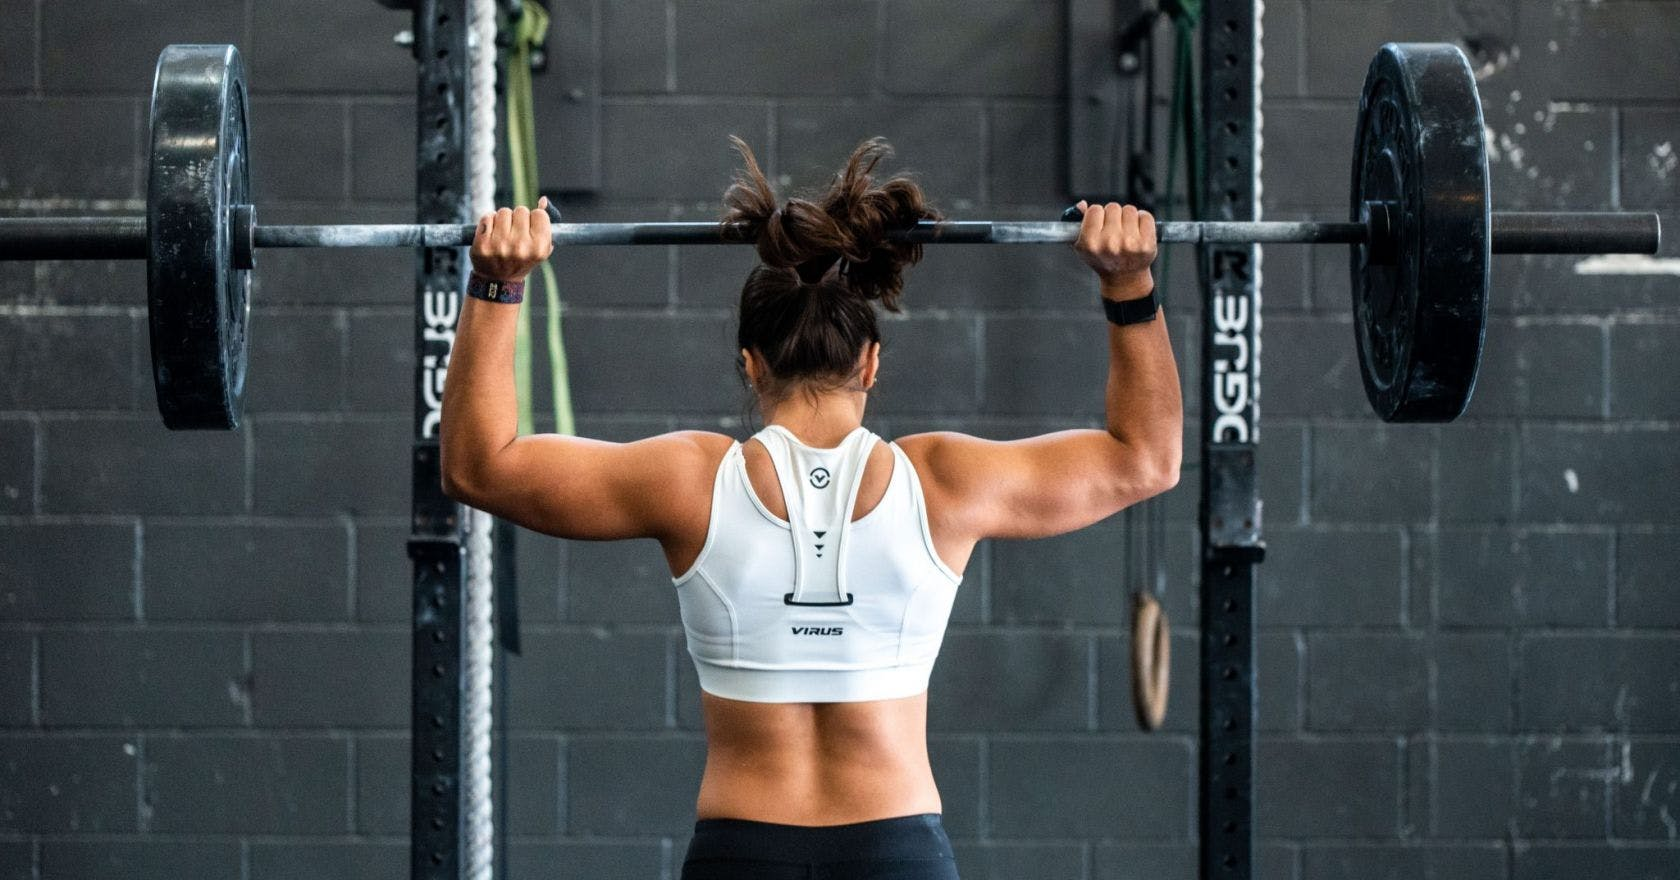 Weight Lifting: what are the best exercises to build muscle?